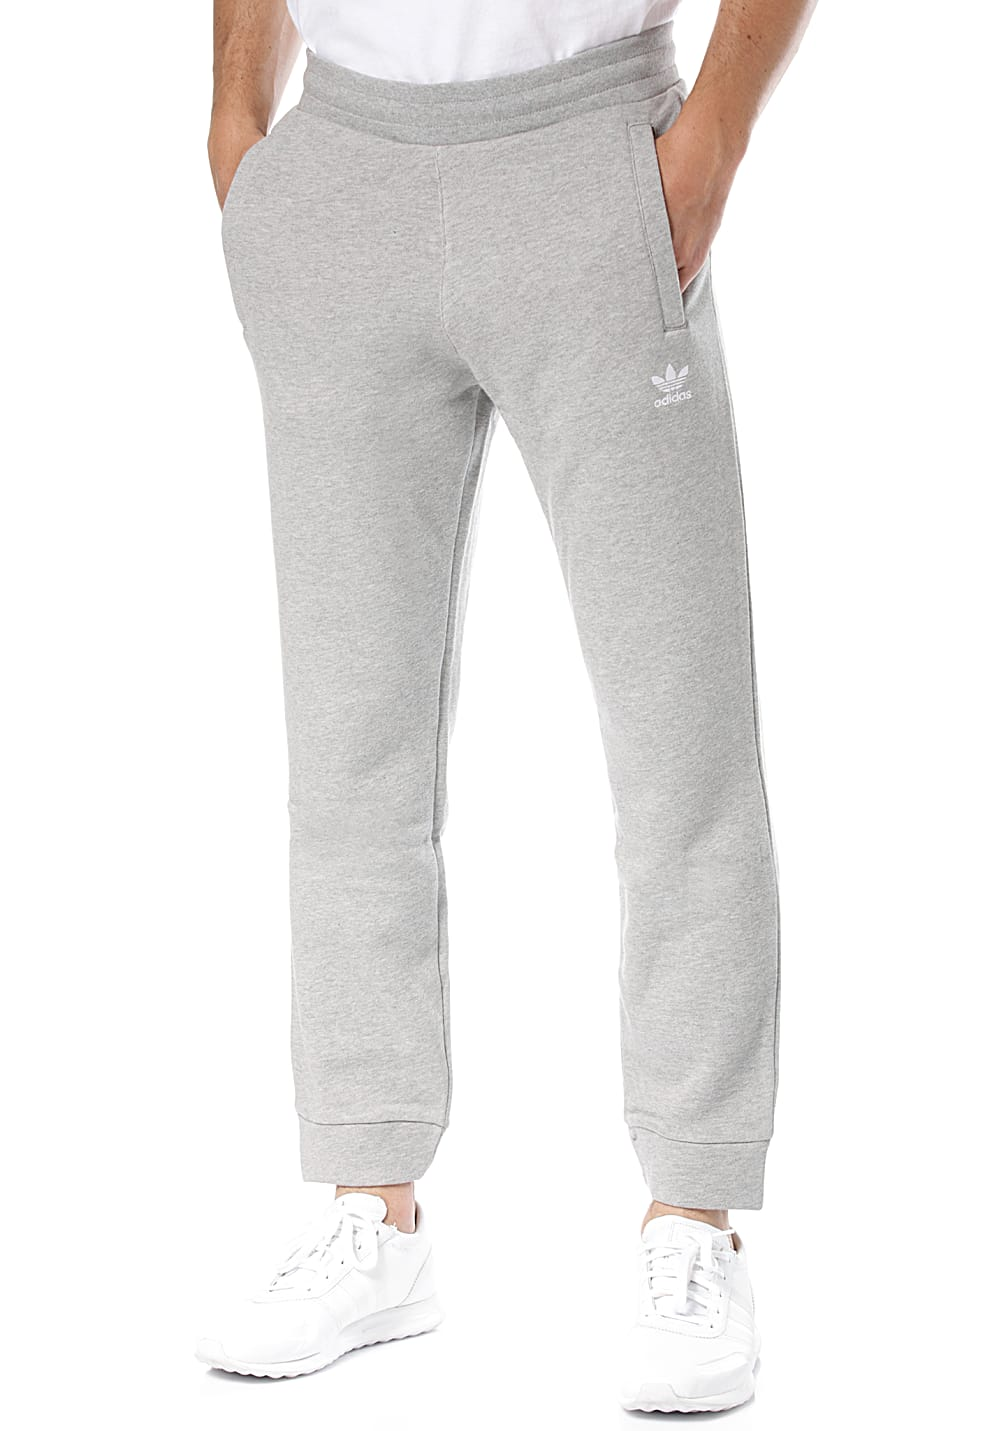 ADIDAS ORIGINALS Trefoil Trackpants for Men Grey